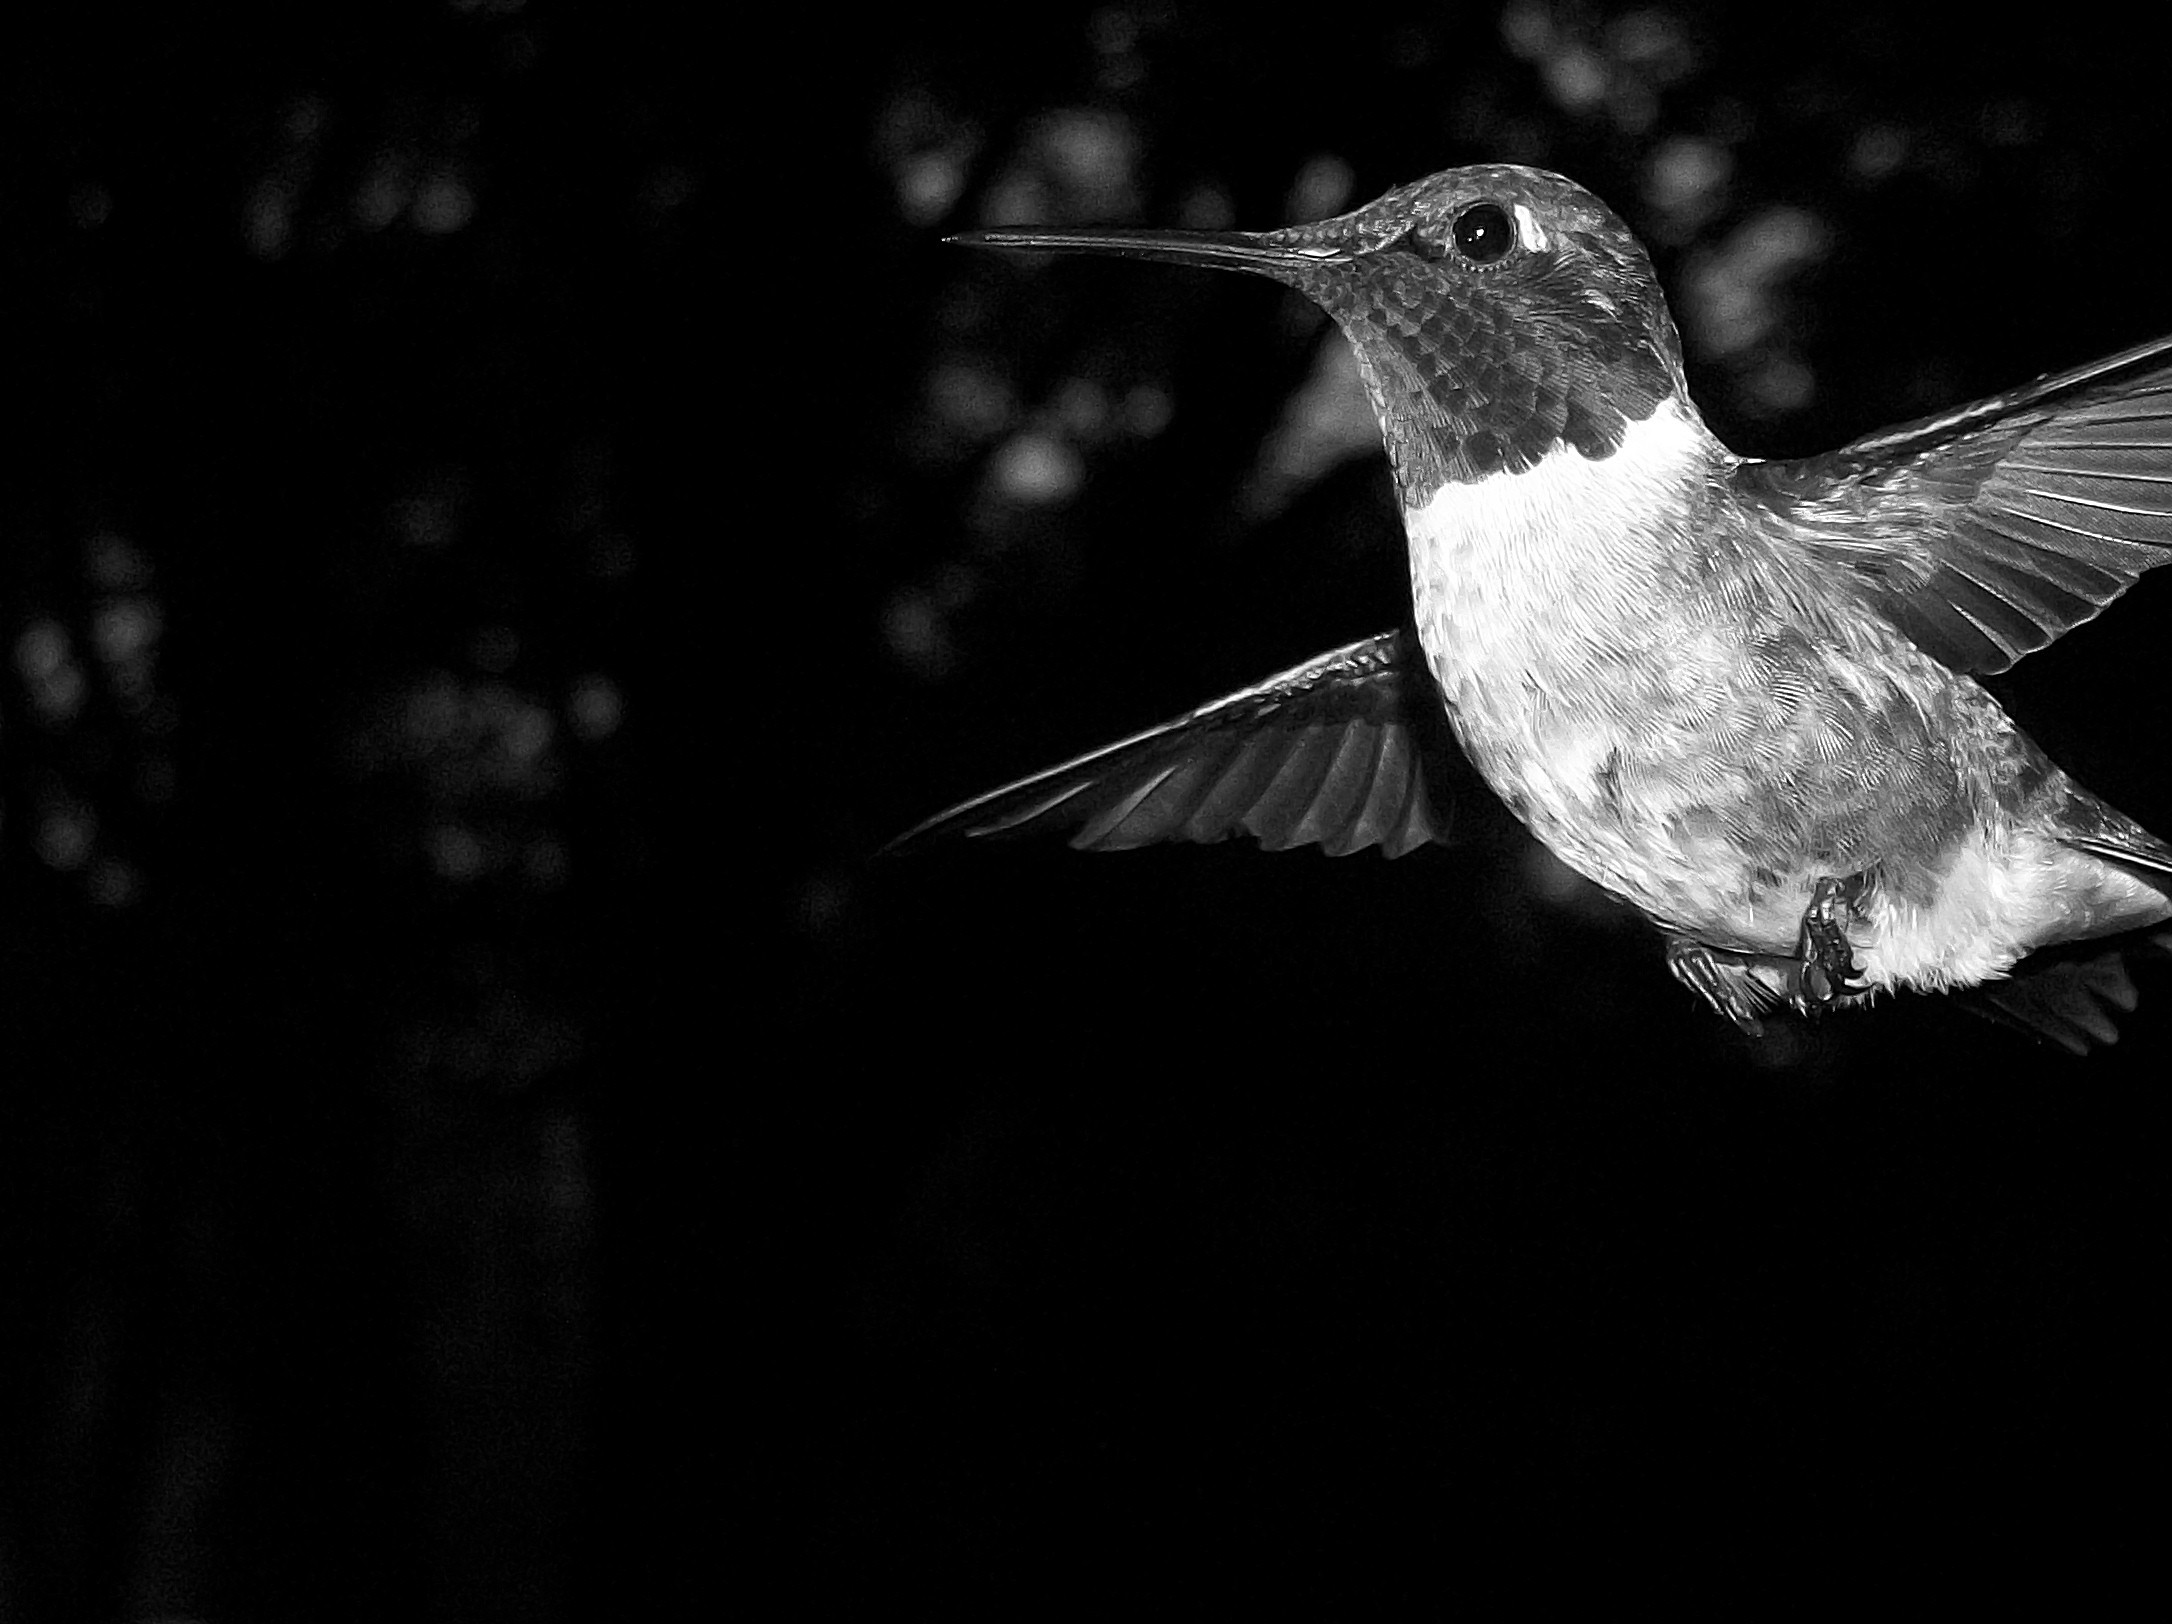 Black and white bord photo